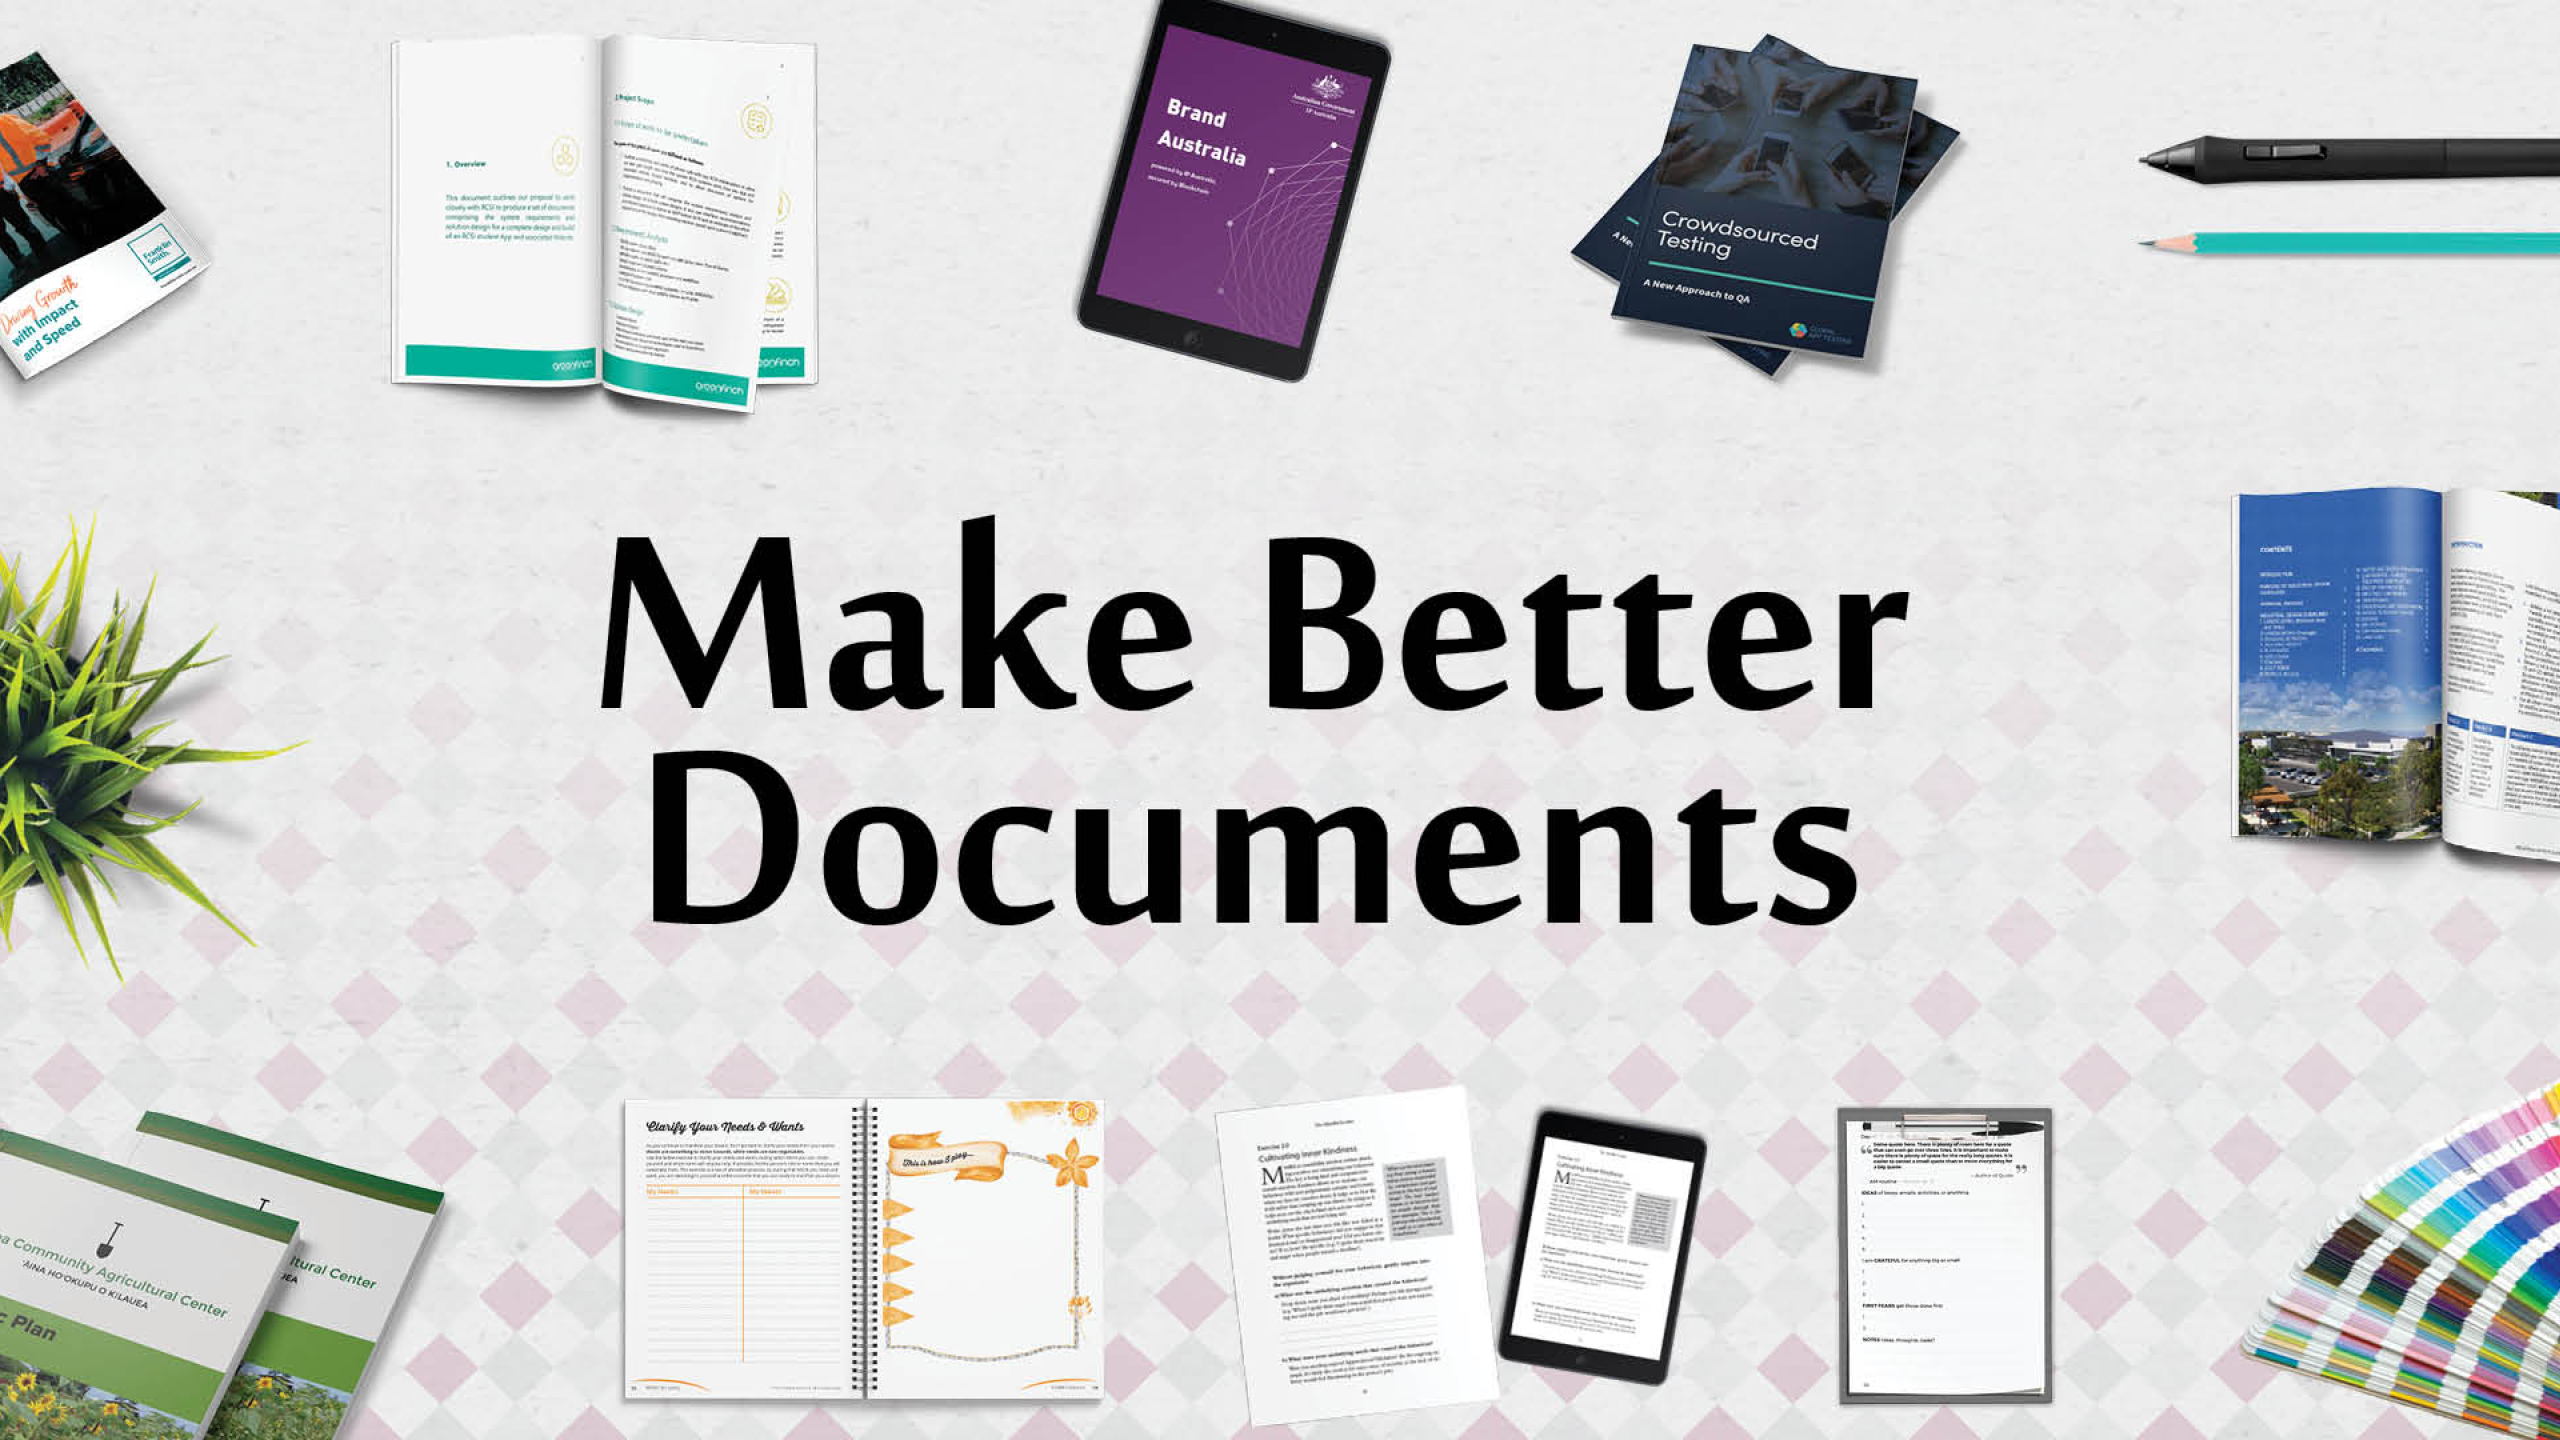 make better documents word doc important look good hard difficult learn tricks tip how-to improve this report presentation learning from an online short course from an industry professional quick and easy